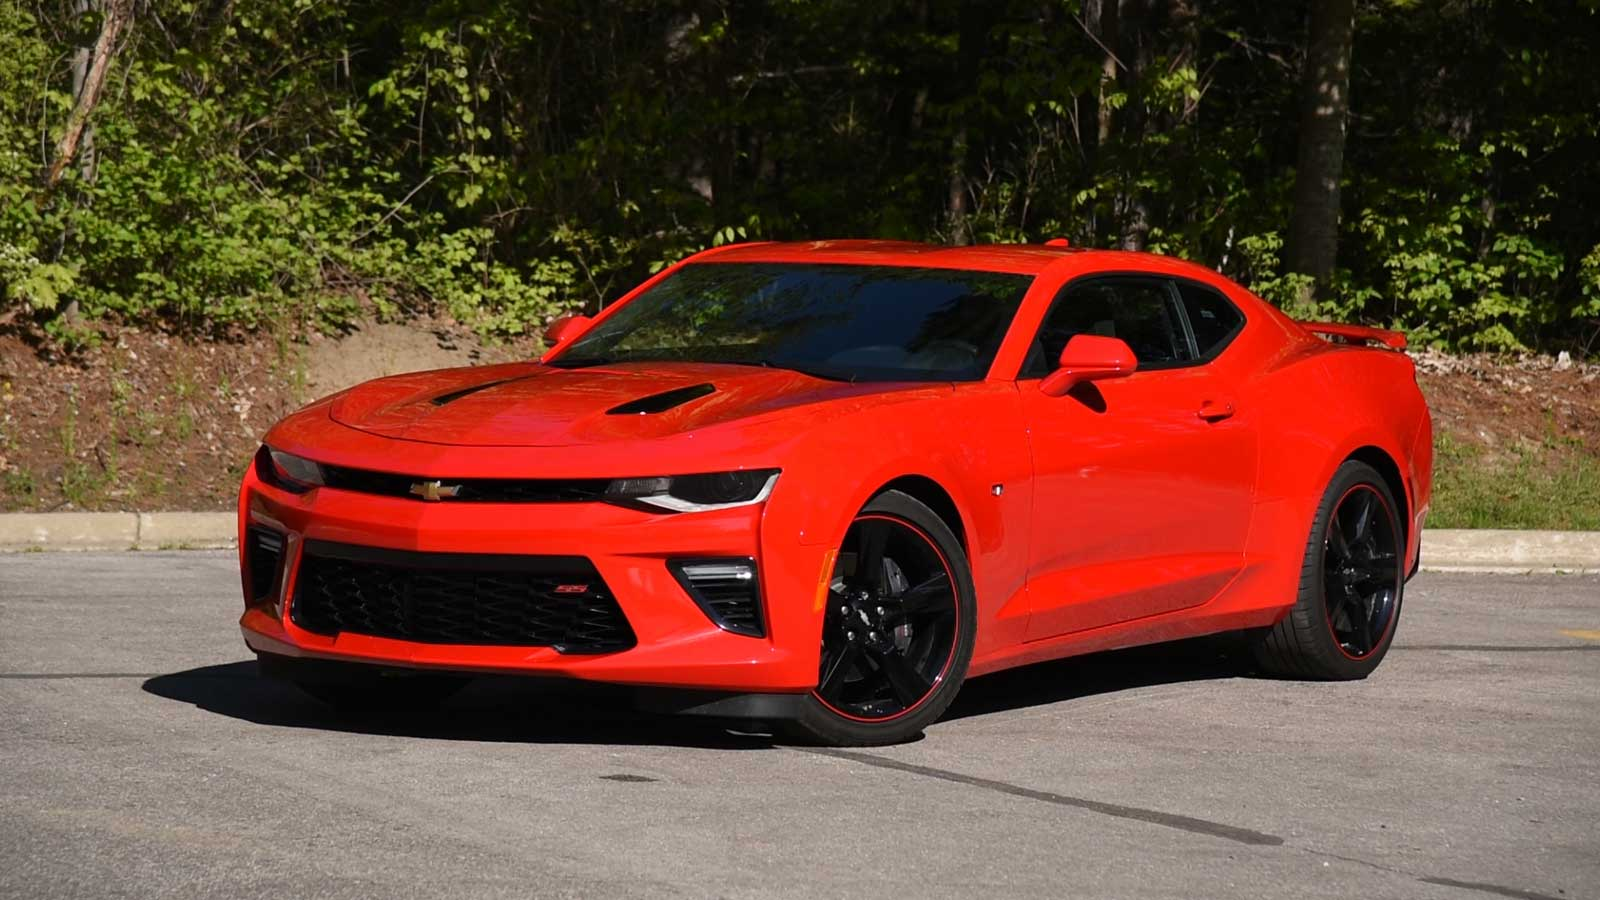 2016 chevrolet camaro ss review curbed with craig cole news. Black Bedroom Furniture Sets. Home Design Ideas